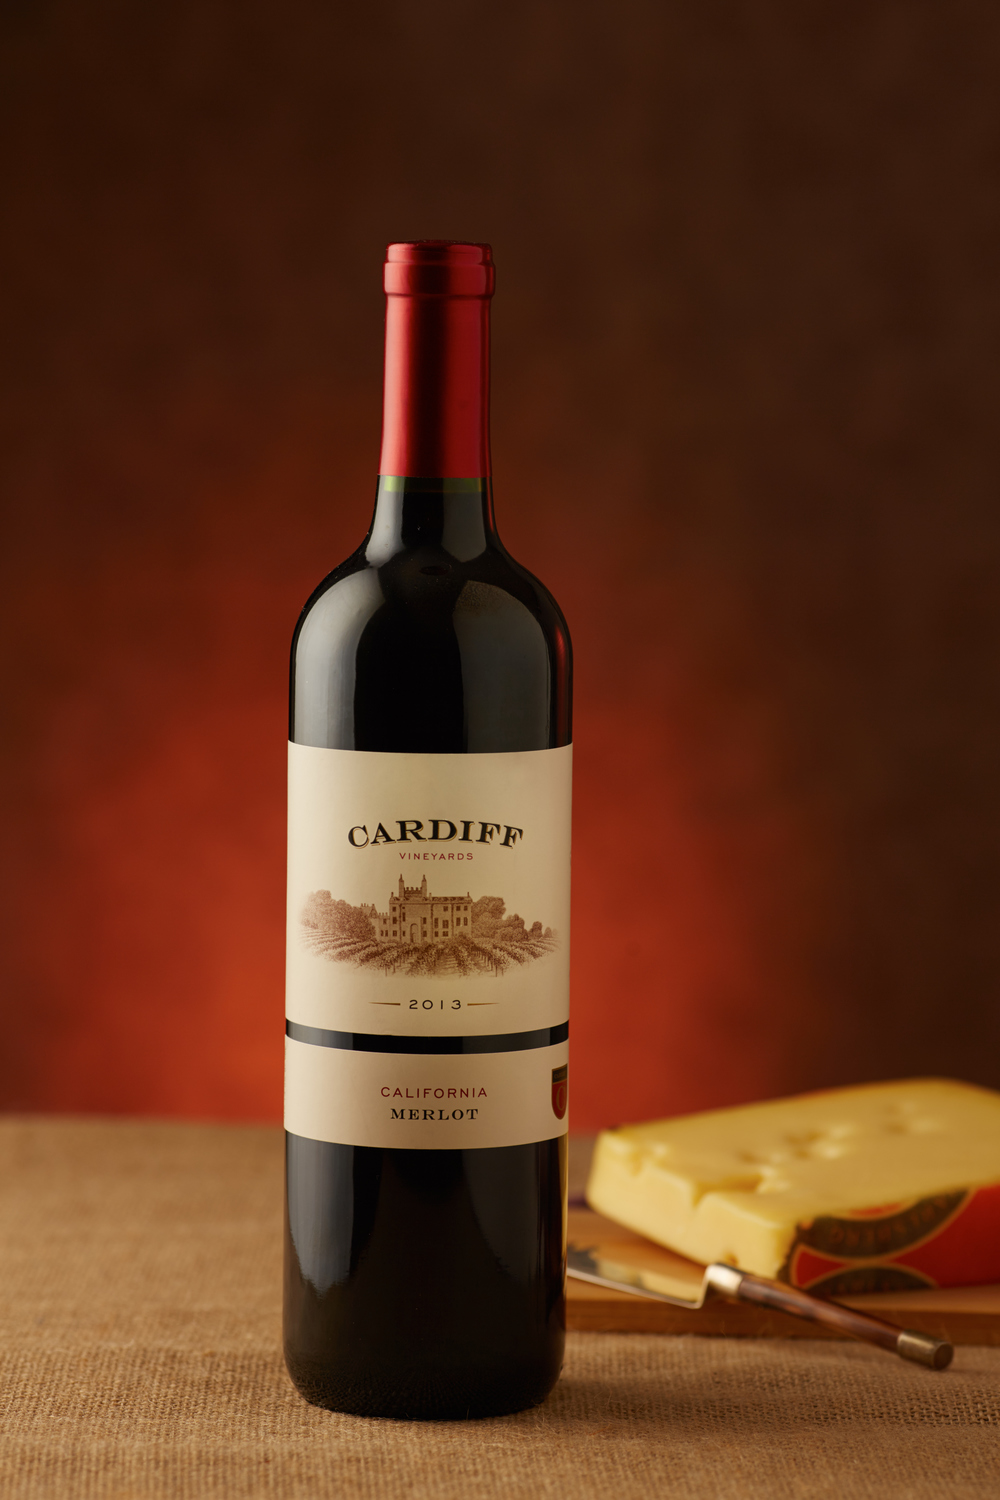 Professional photo of a bottle of Cardiff Merlot red wine on a wood table with Swiss cheese behind the bottle. Photo take in studio with a black background and a red gradient. Commercial photography